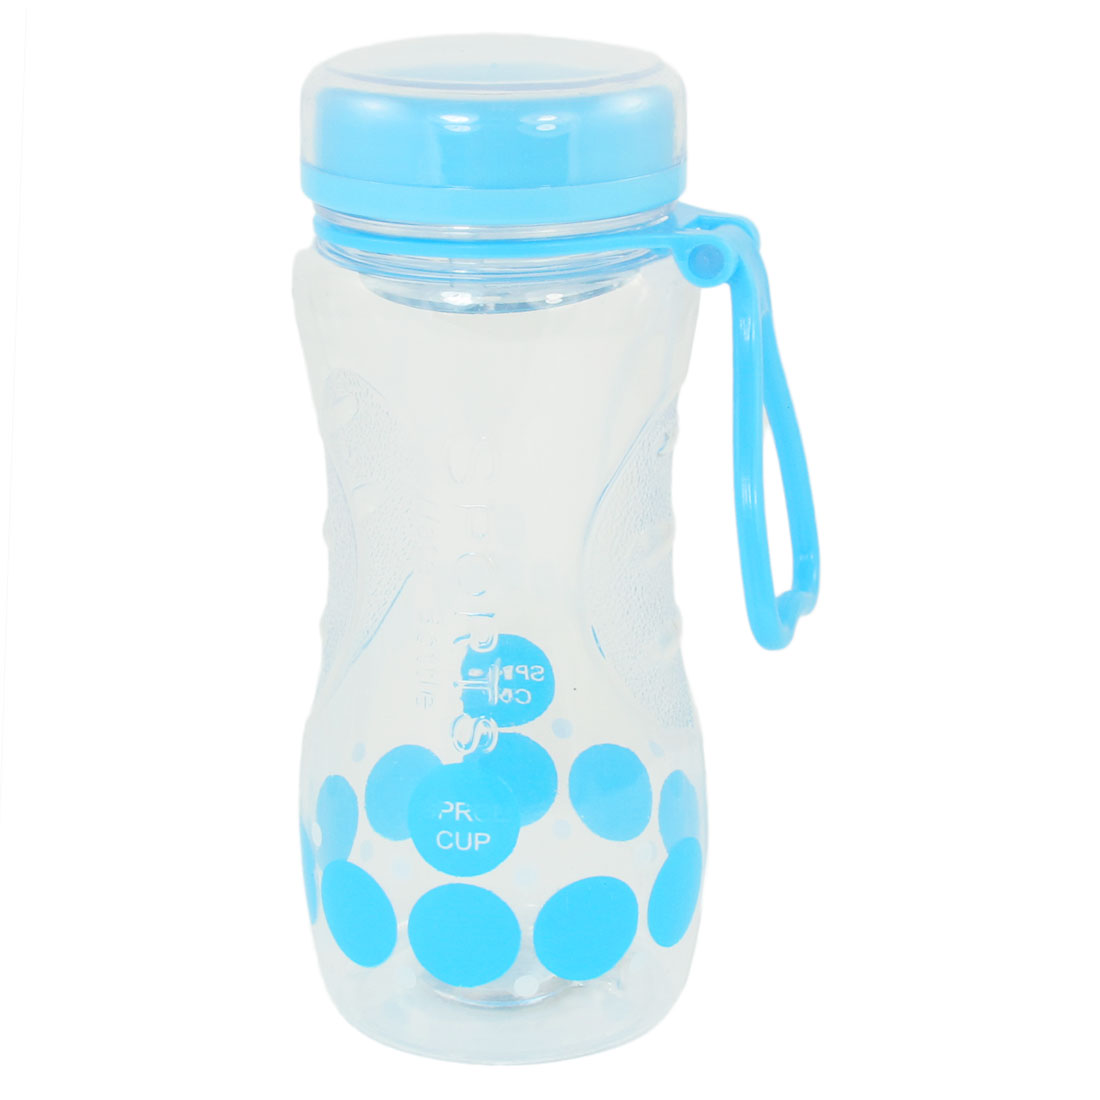 Portable Blue Lid Round Pattern Clear Plastic Water Bottle Drink Cup 420ml